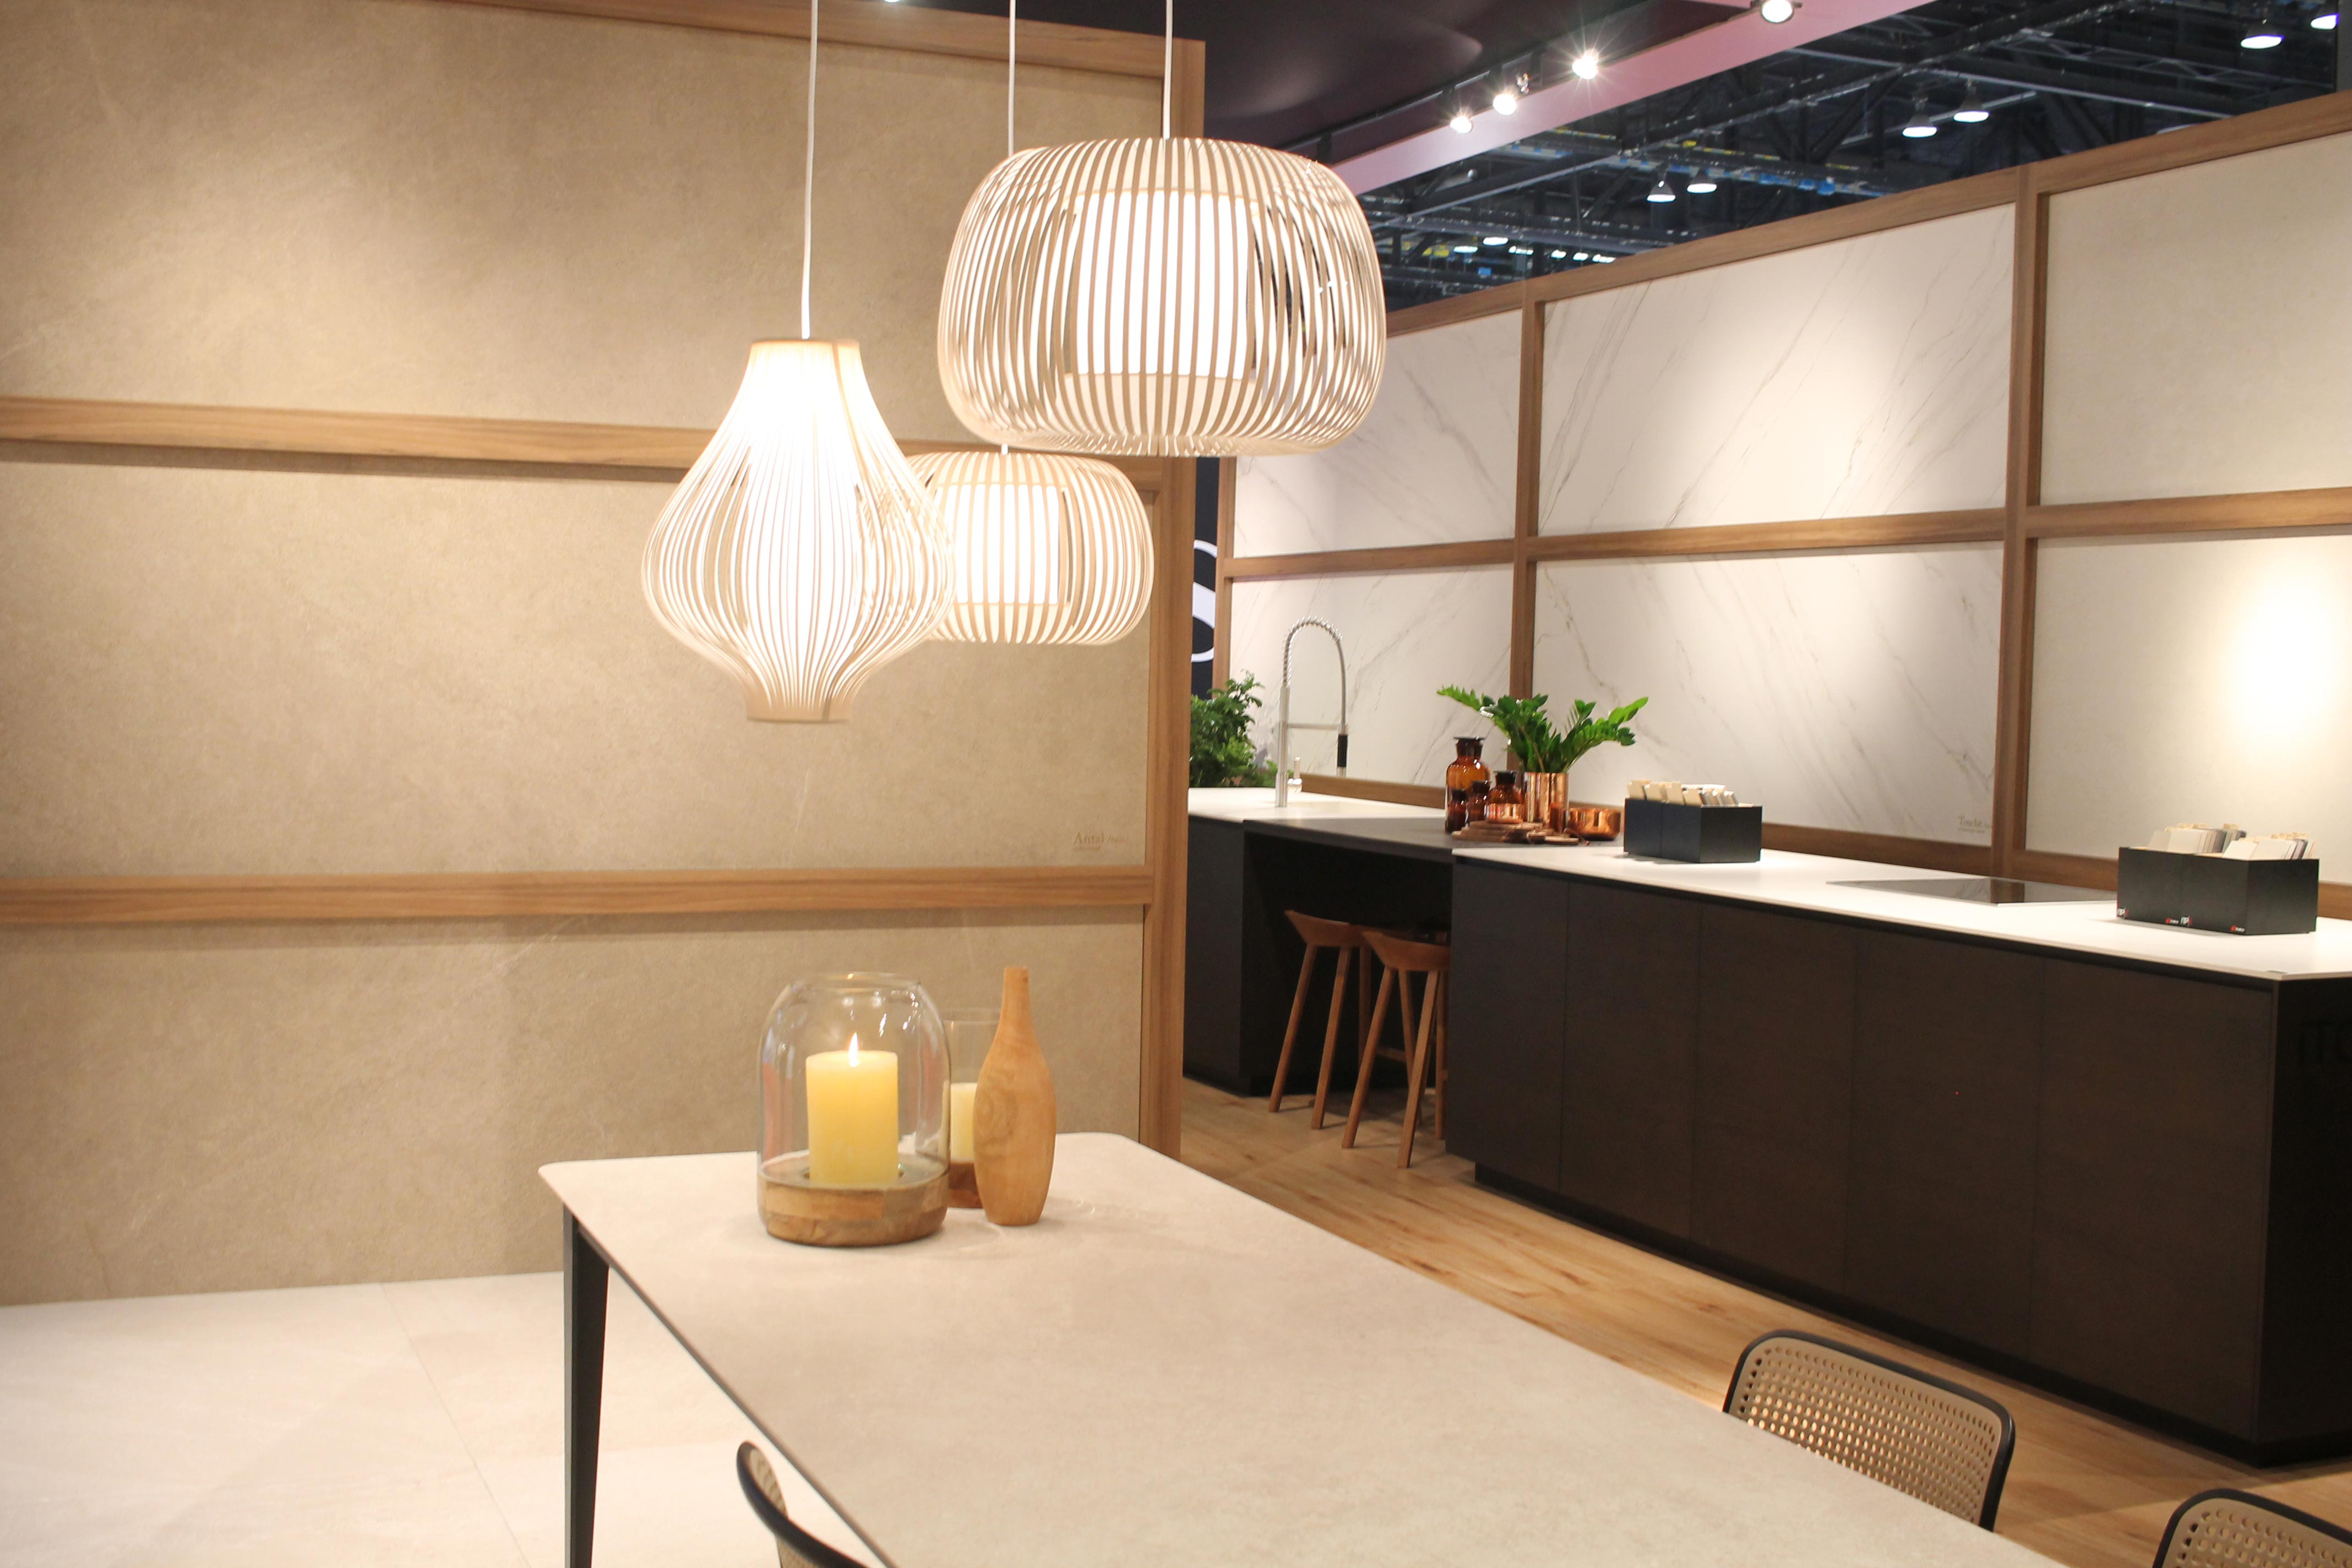 Inalco at Coverings 2016